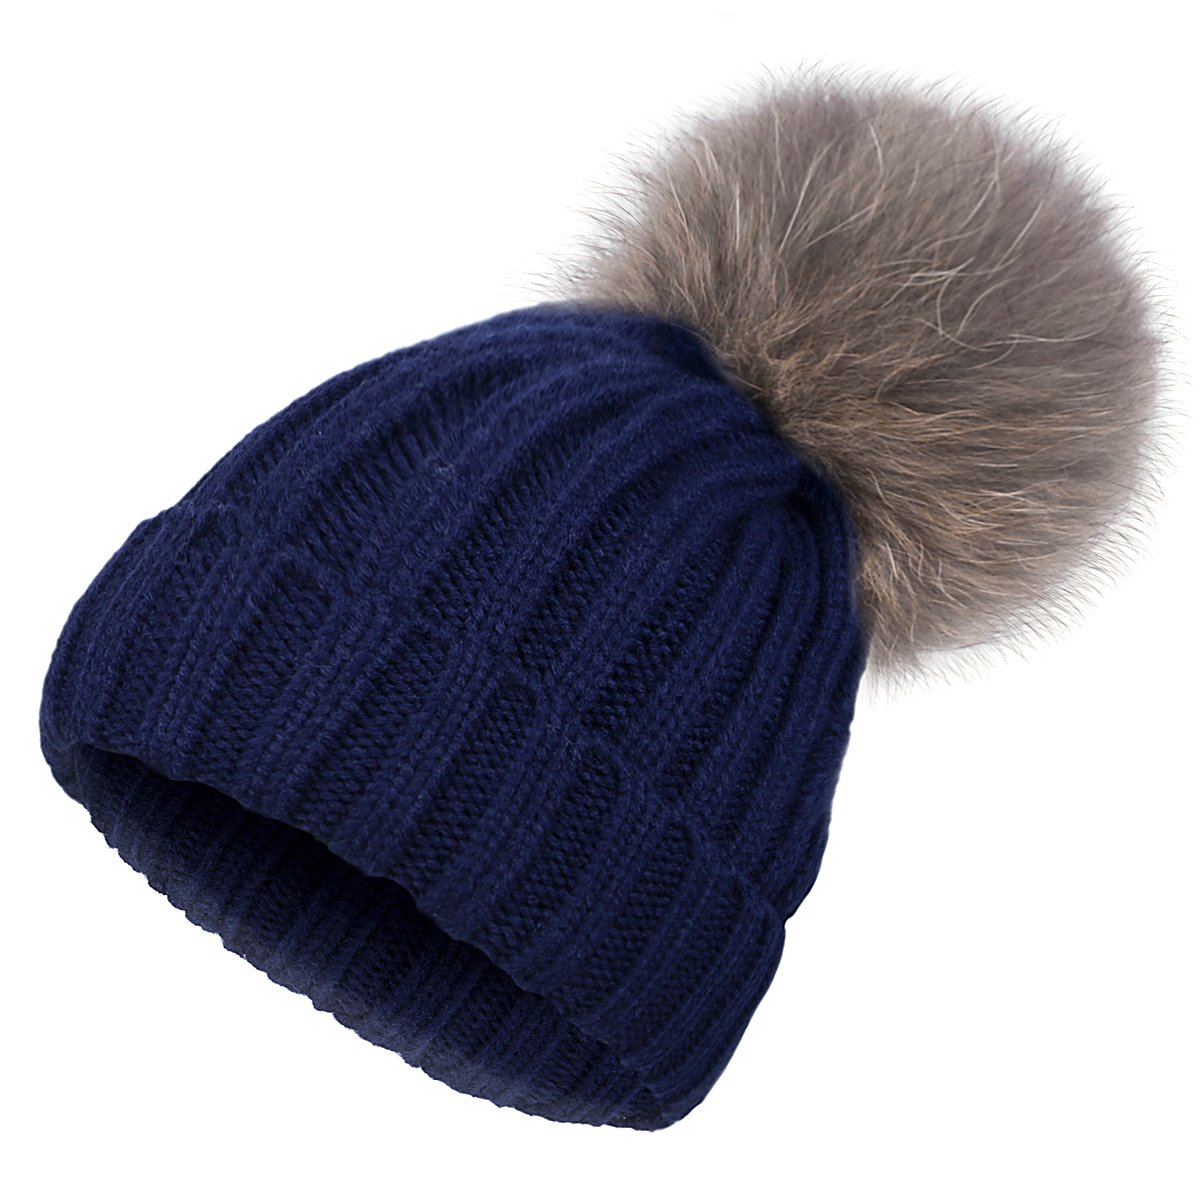 EVRFELAN Winter Hand Faux Fur Hat Pompoms Beanie Cable Knit Warm Family Crochet Ski Skull Cap for Girls (mink dark blue)